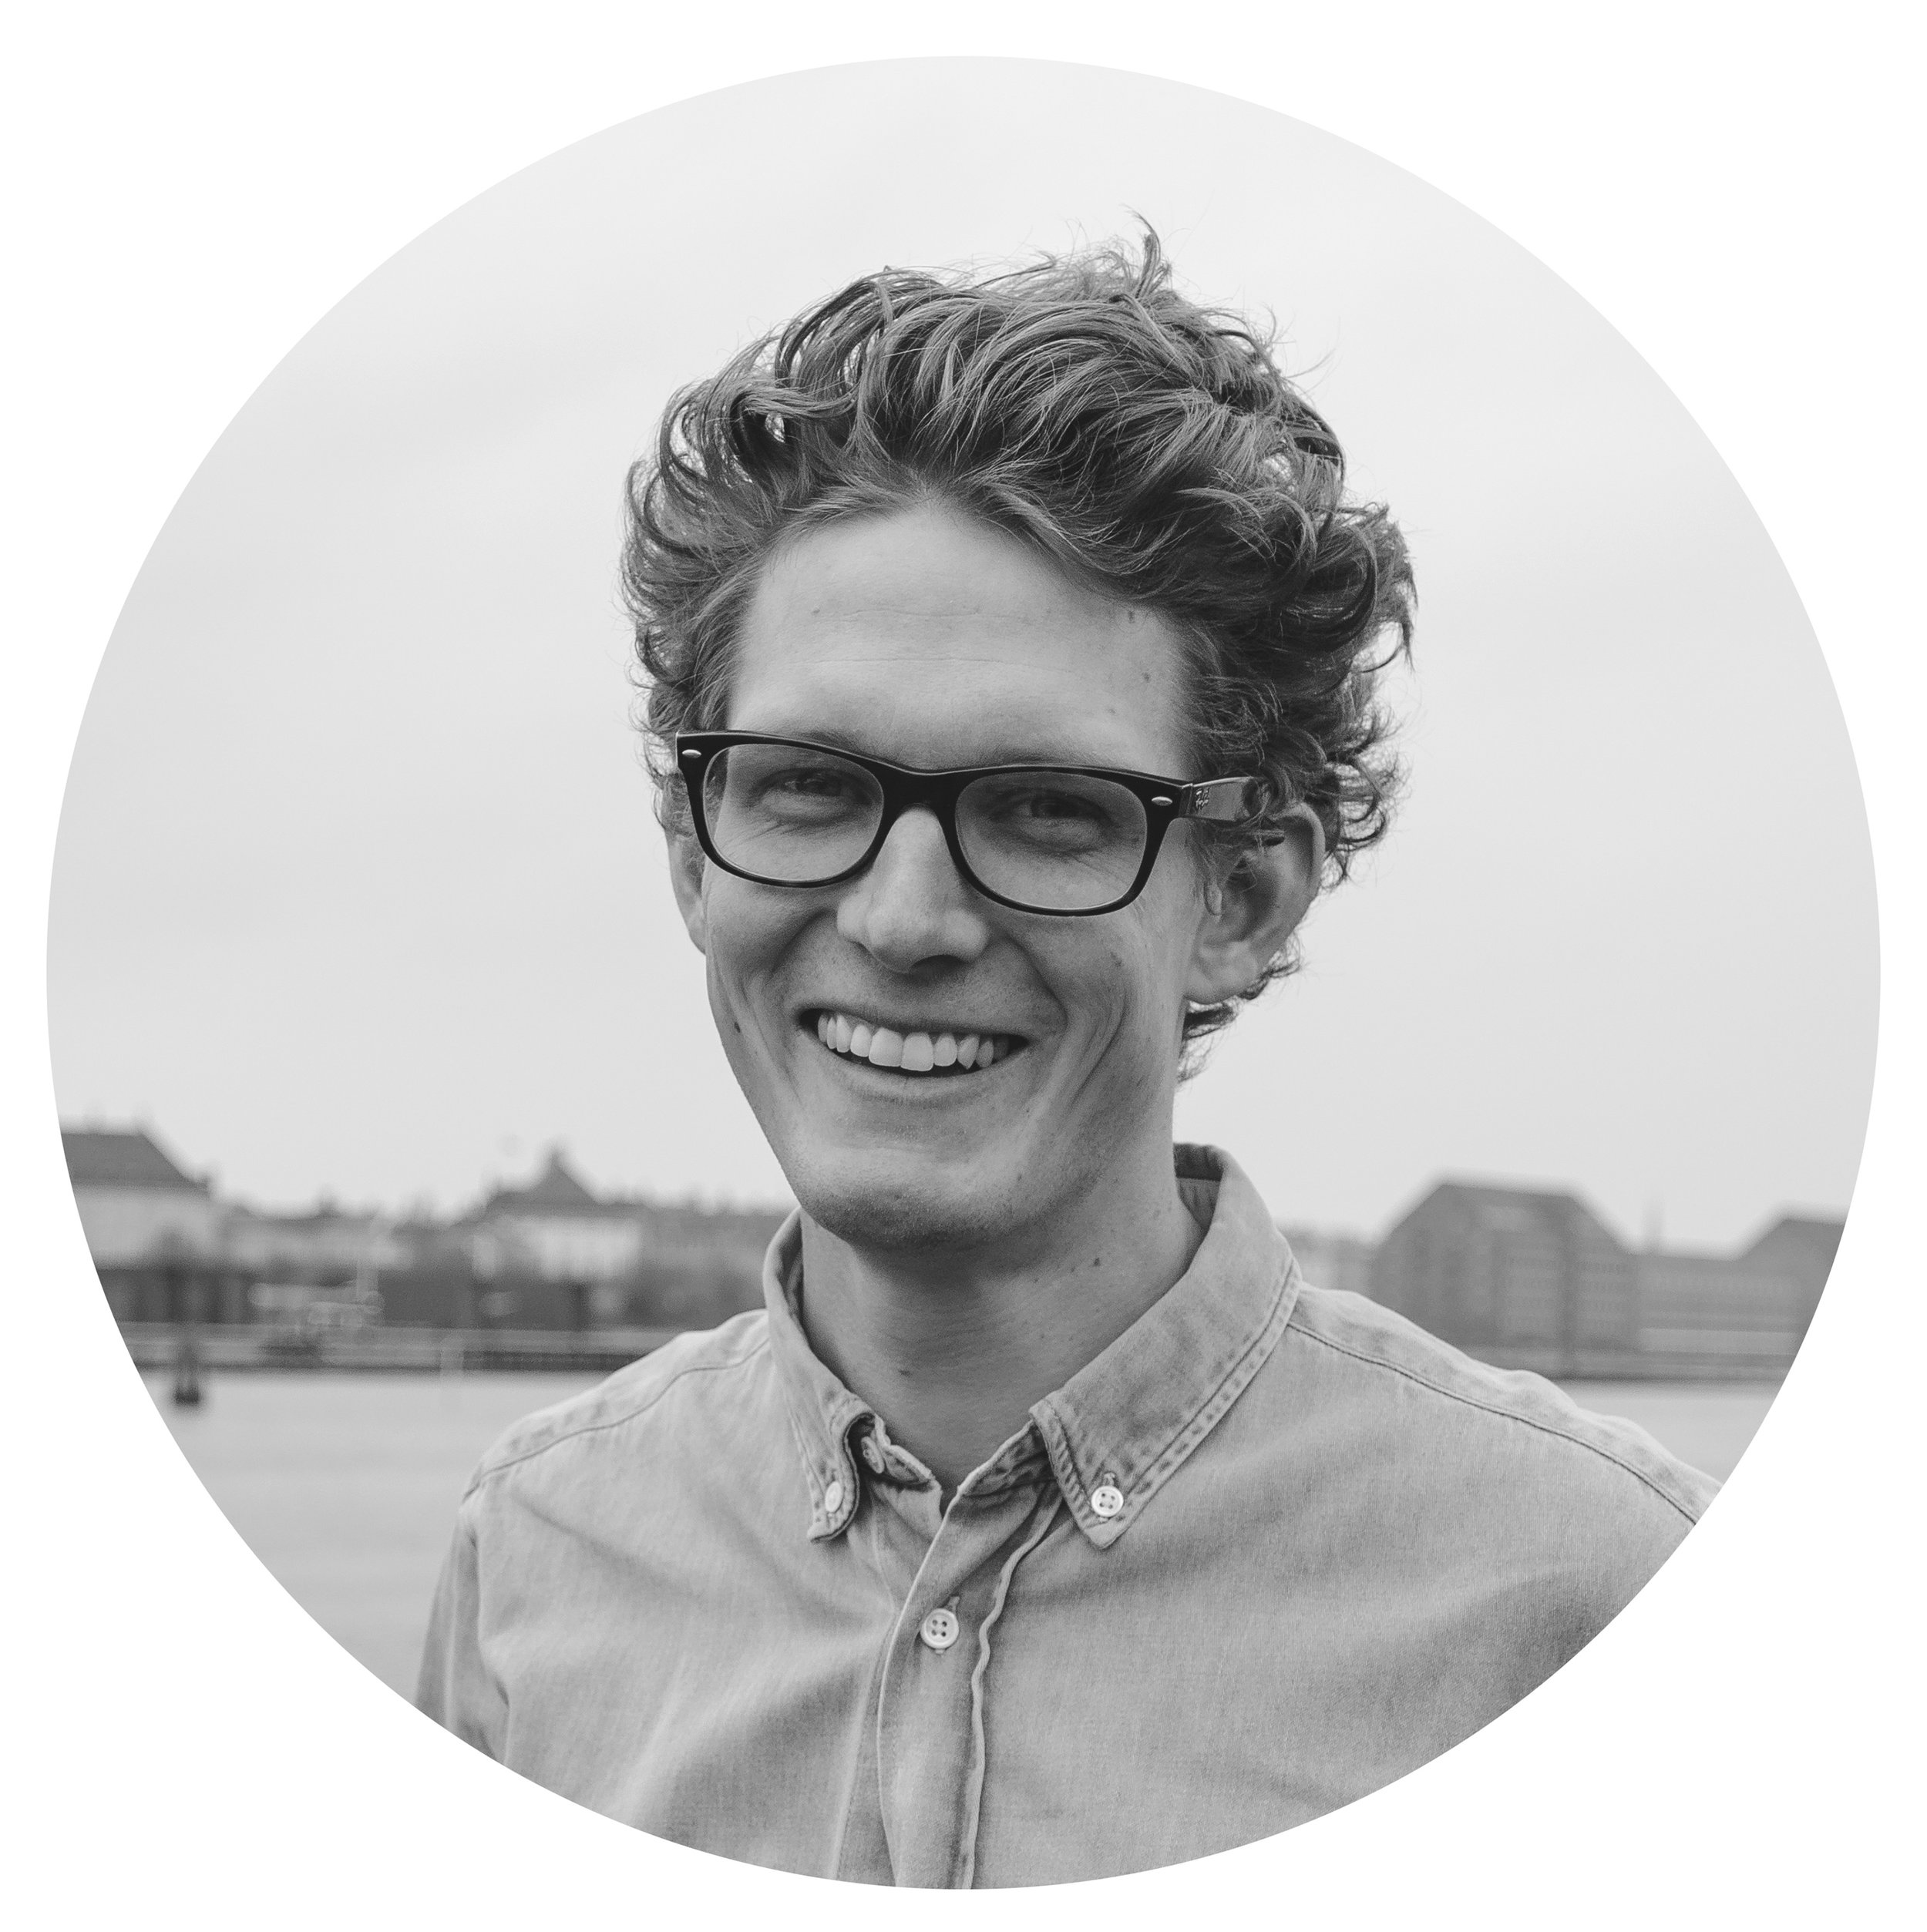 James Thoem, Director -copenhagen - With a background in urbanism, and a Masters in Urban Planning from KTH The Royal Institute of Technology in Stockholm, James brings with him an academic and professional background to managing projects in our Copenhagen office. When he's not busy developing plans and communication strategies, he'll likely be found skateboarding in Copenhagen's world-renowned public spaces.